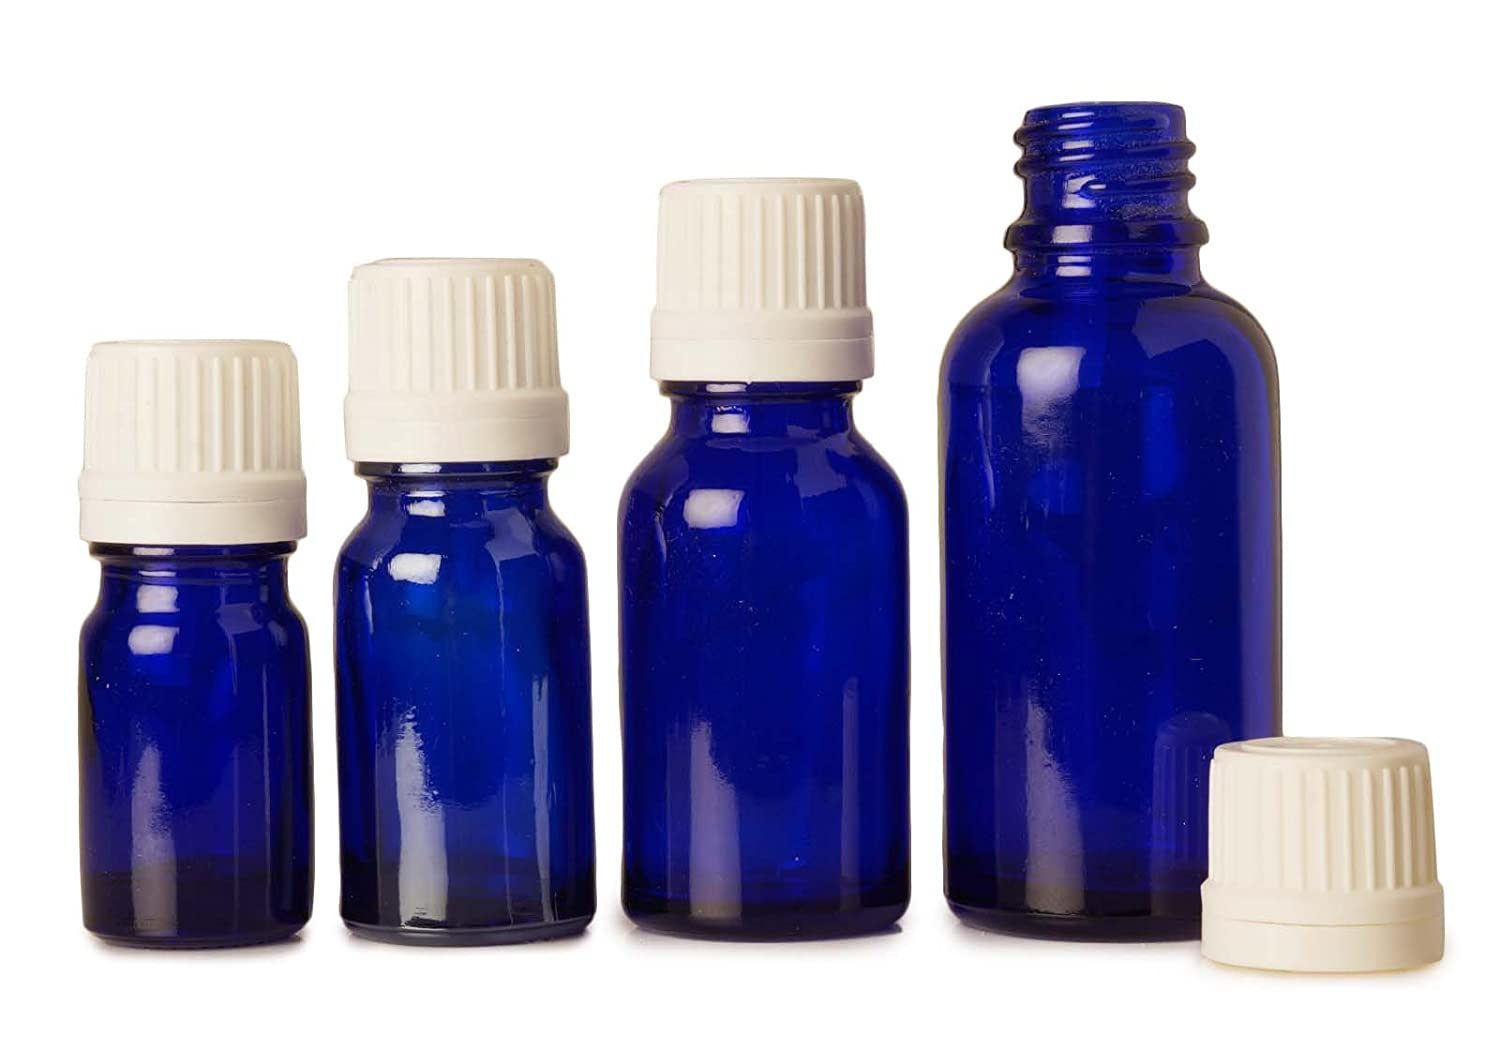 6 Pcs Blue Glass Aromatherapy Empty Bottles With White Tamper Evident Cap For Essential Oils 5 ml MT Bottles & Jars